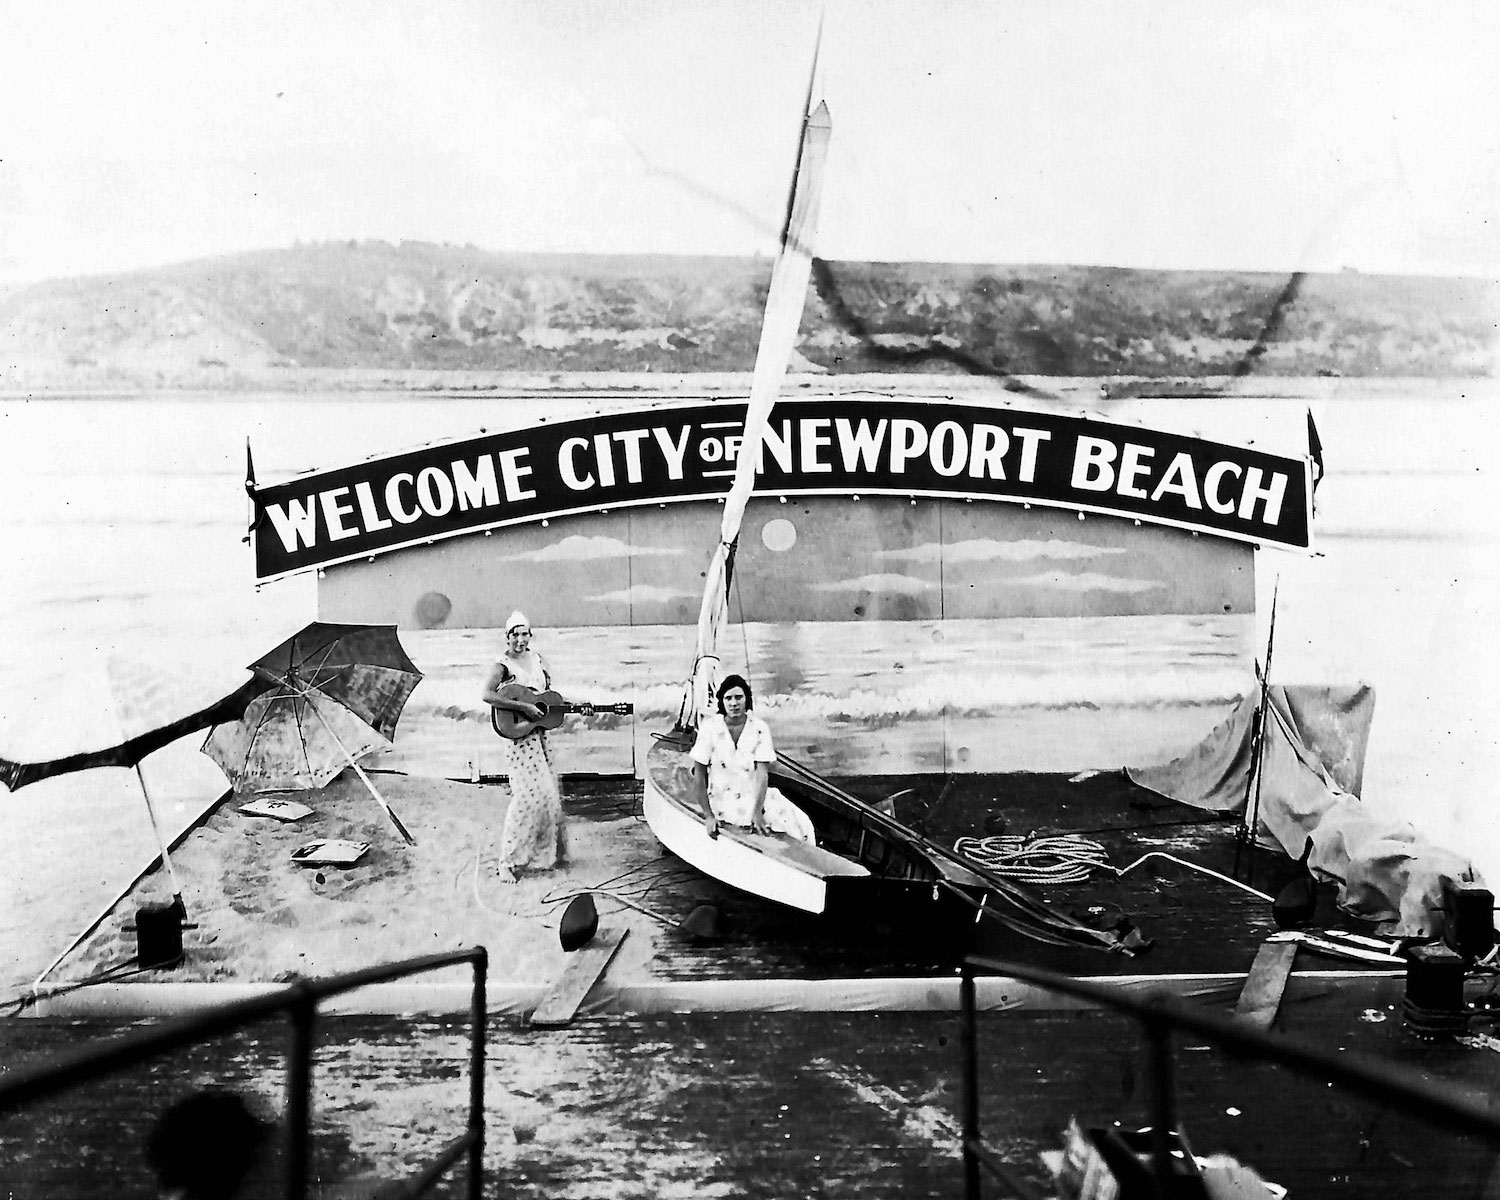 Newport Beach Then and Now nostalgic photo